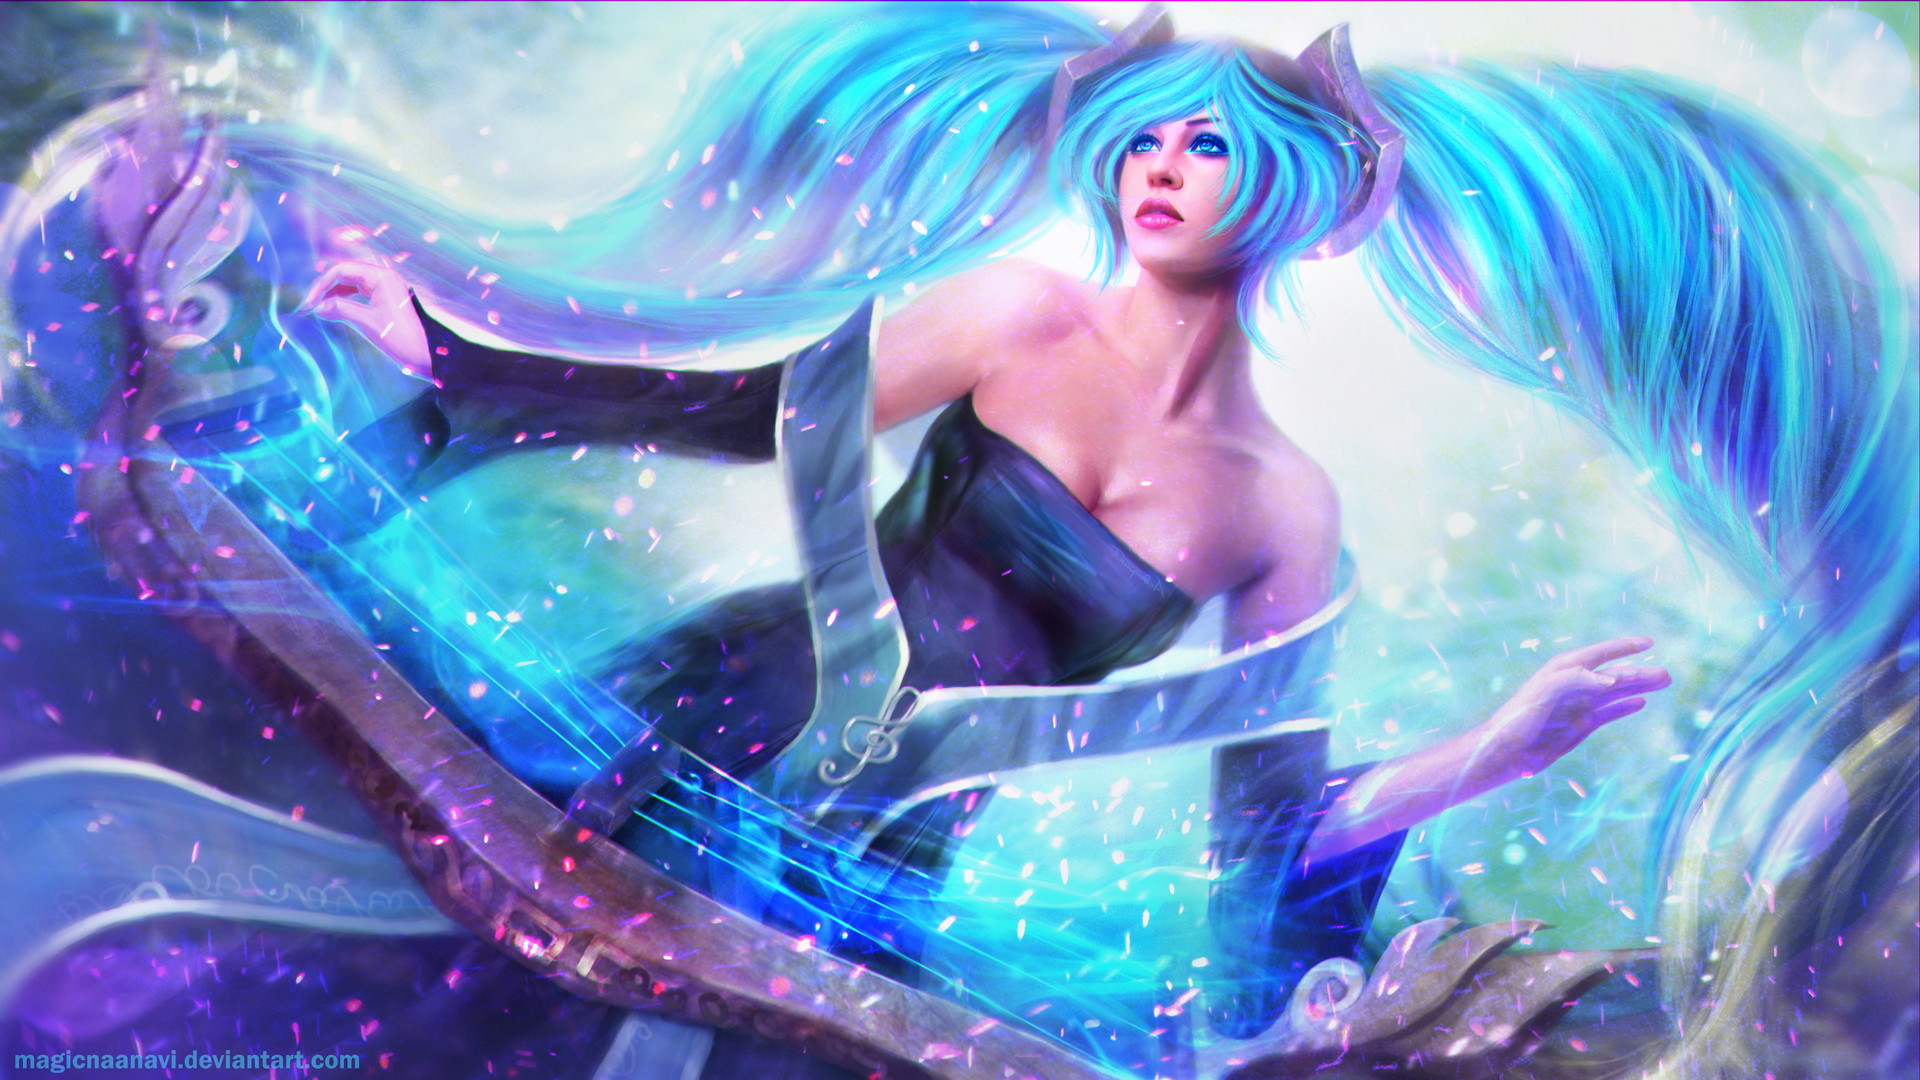 Sona League of Legends Wallpapers HD Wallpapers 1920x1080